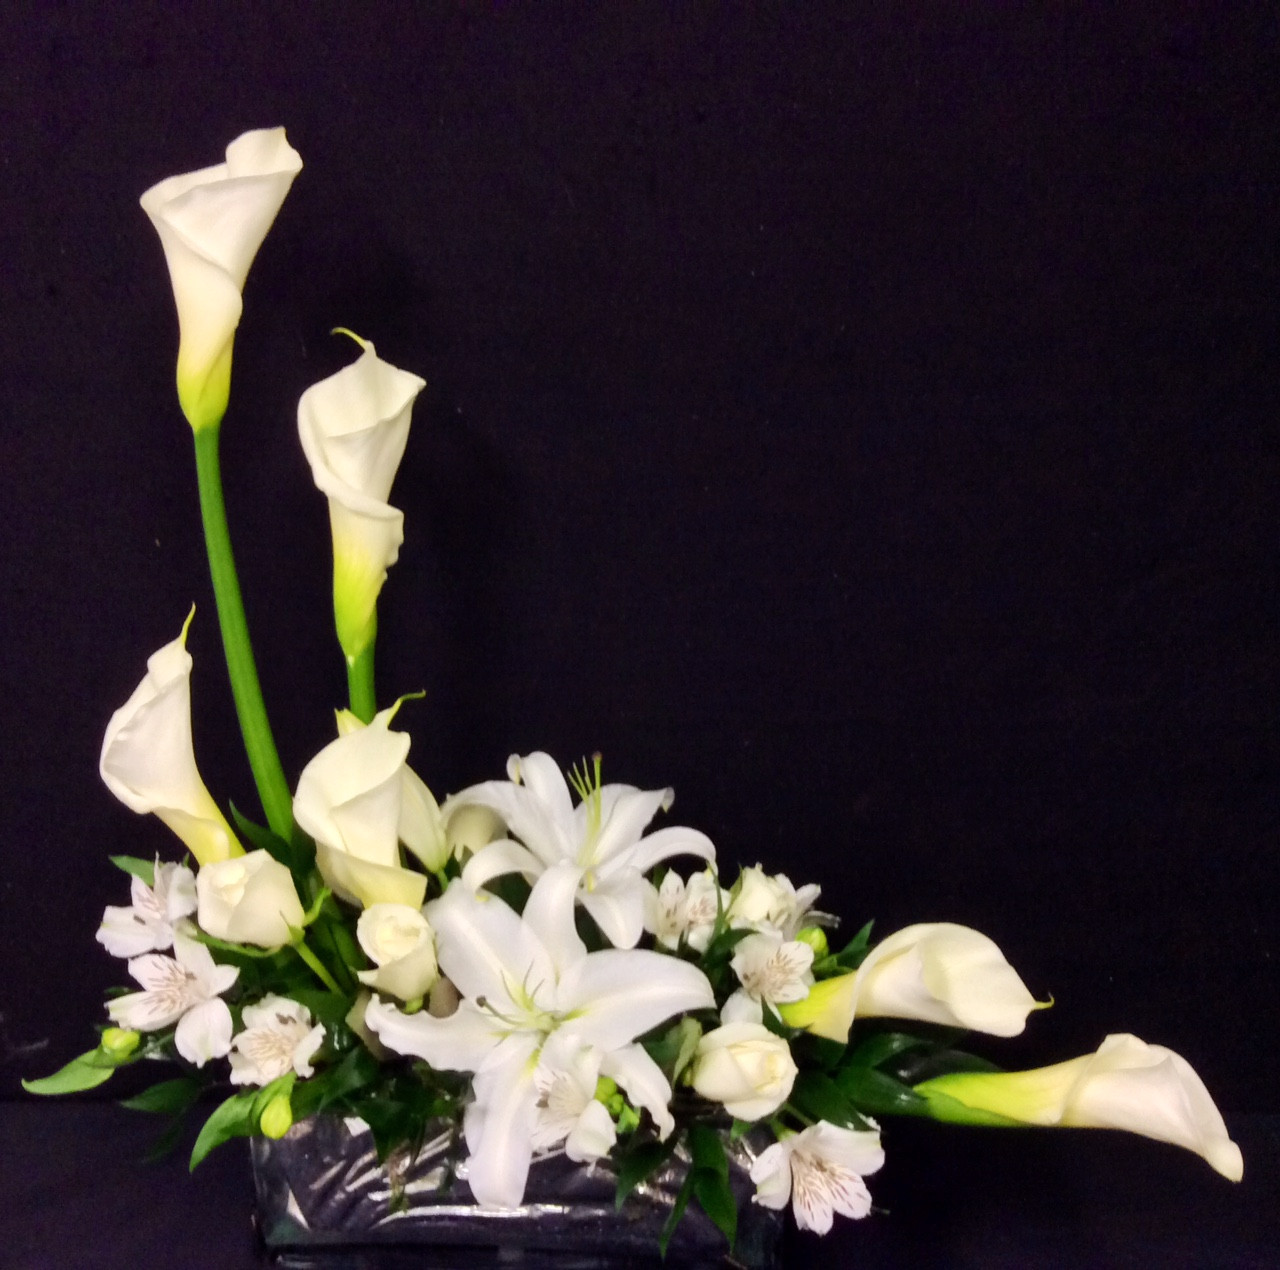 Contemporary arrangement with calla lilies and white stargazers contemporary arrangement with calla lilies and white stargazers izmirmasajfo